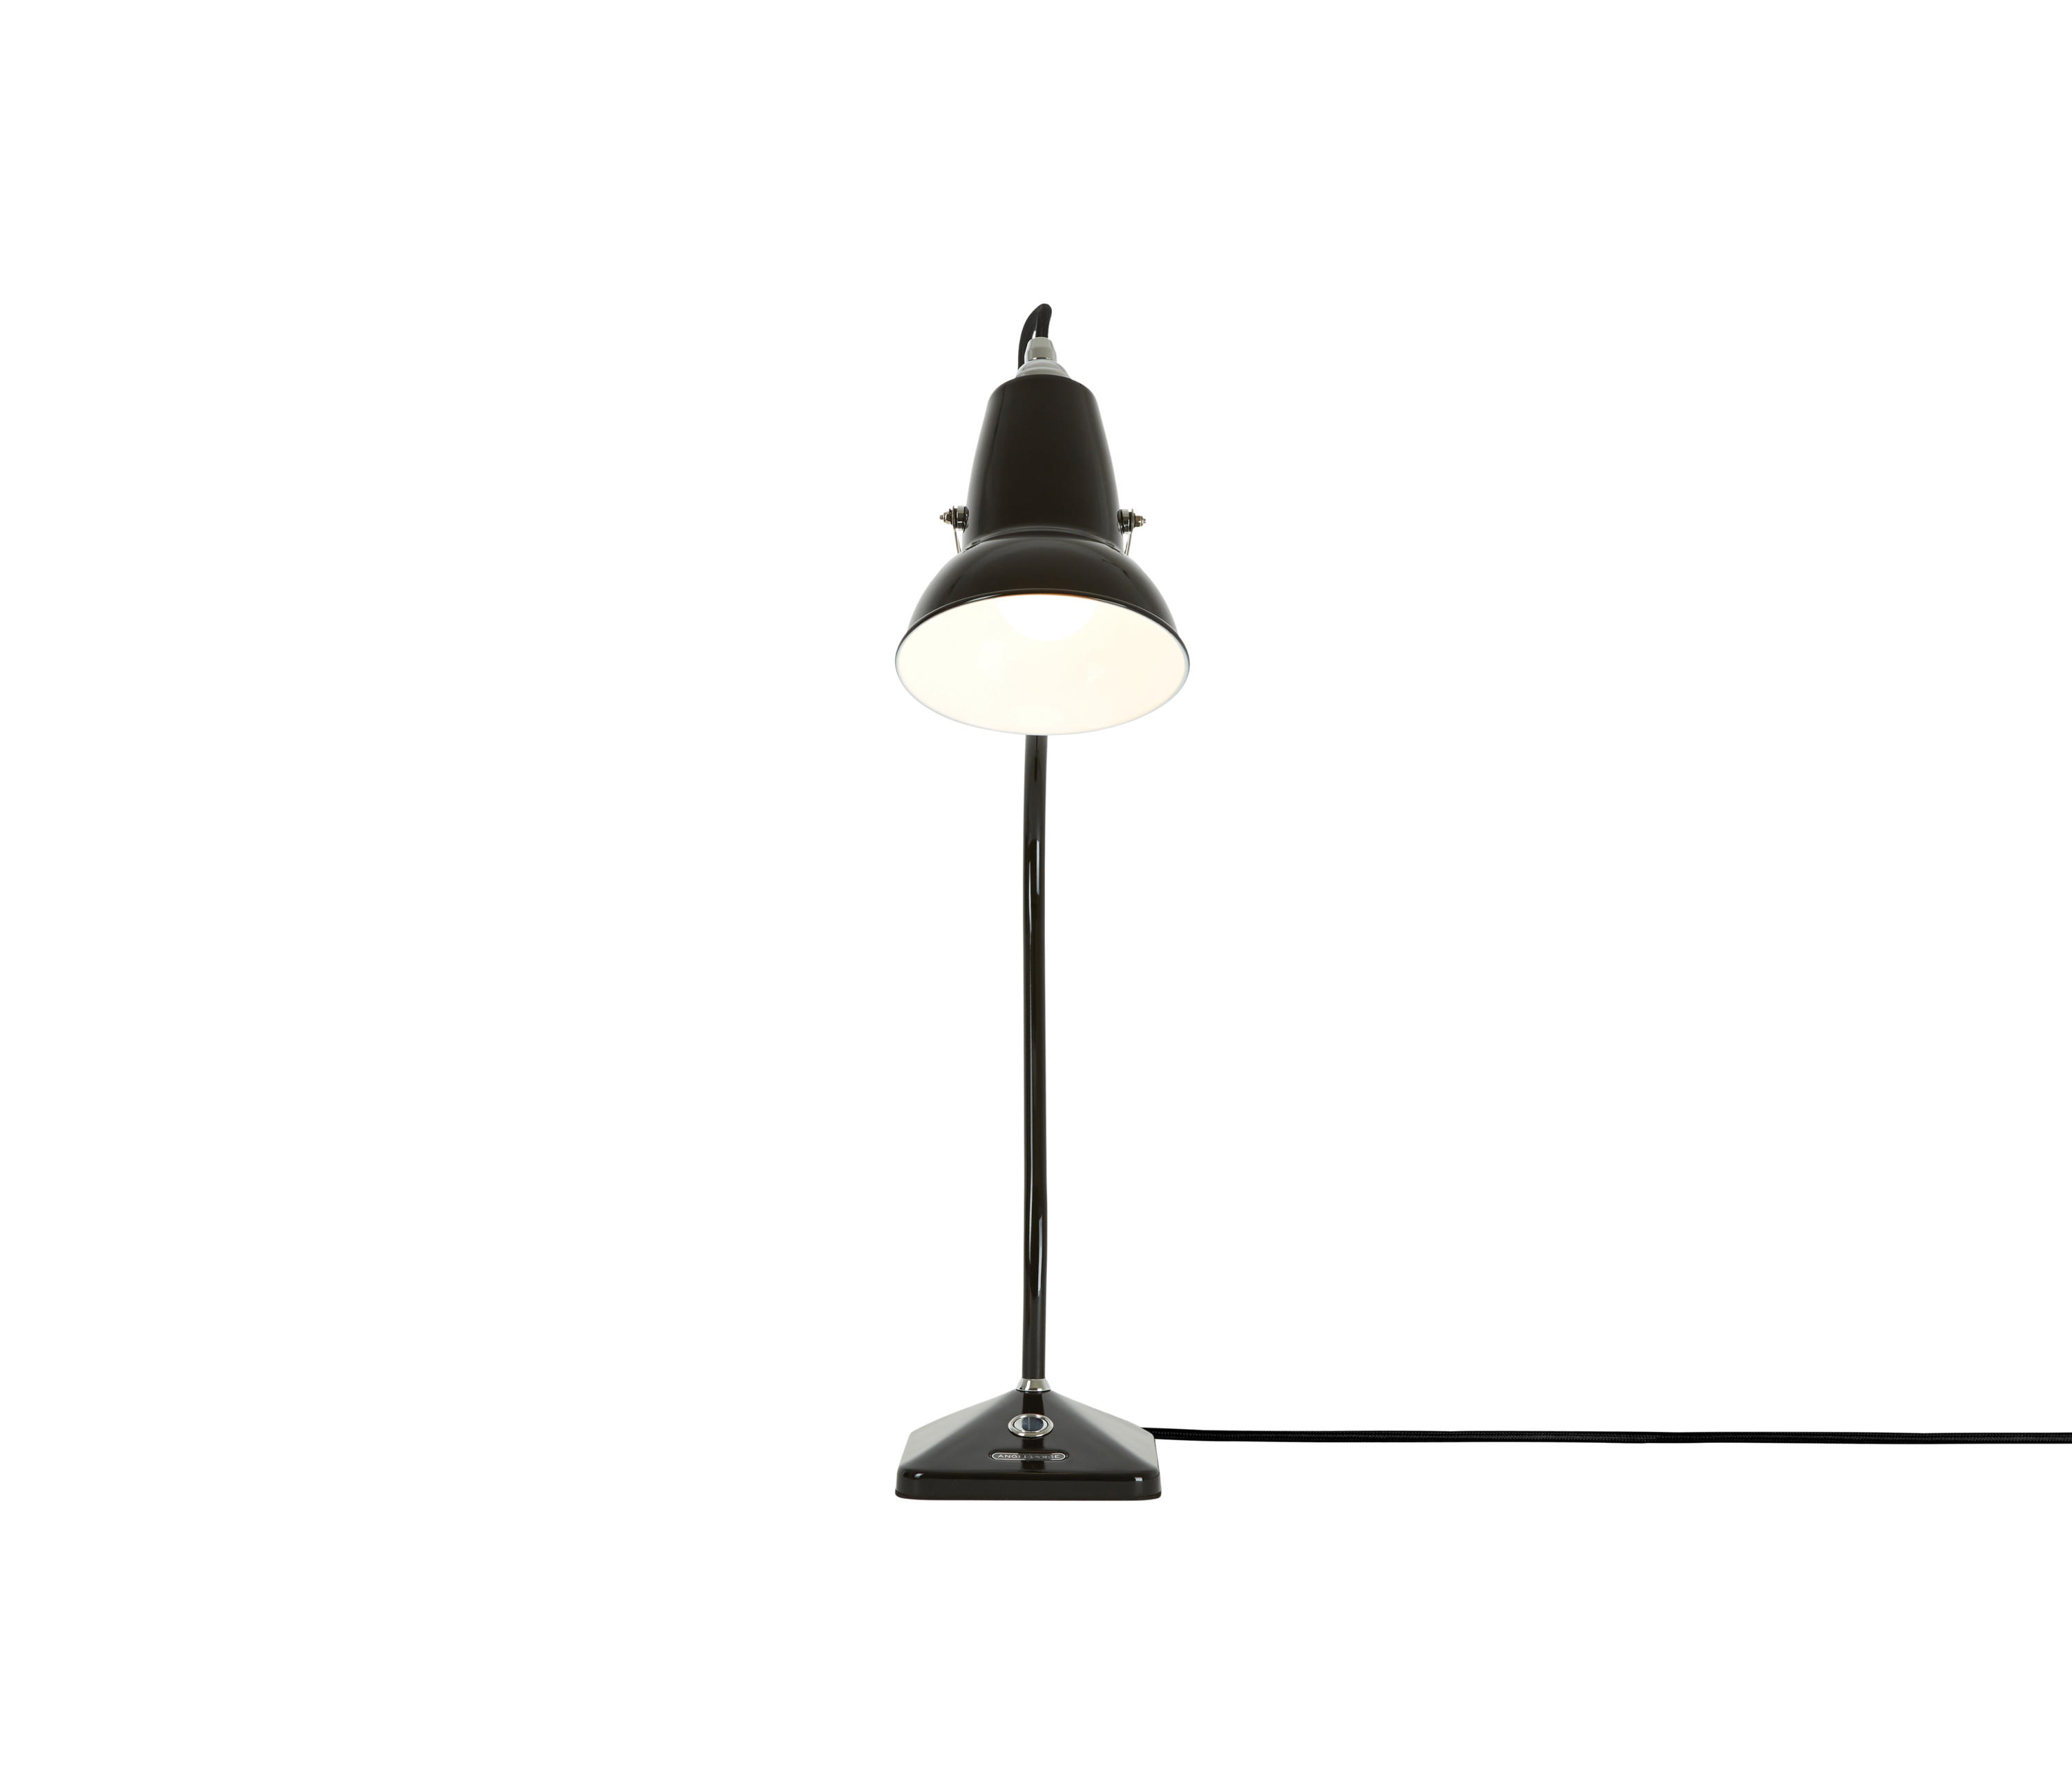 ... Original 1227™ Mini Table Lamp by Anglepoise | Table lights ...